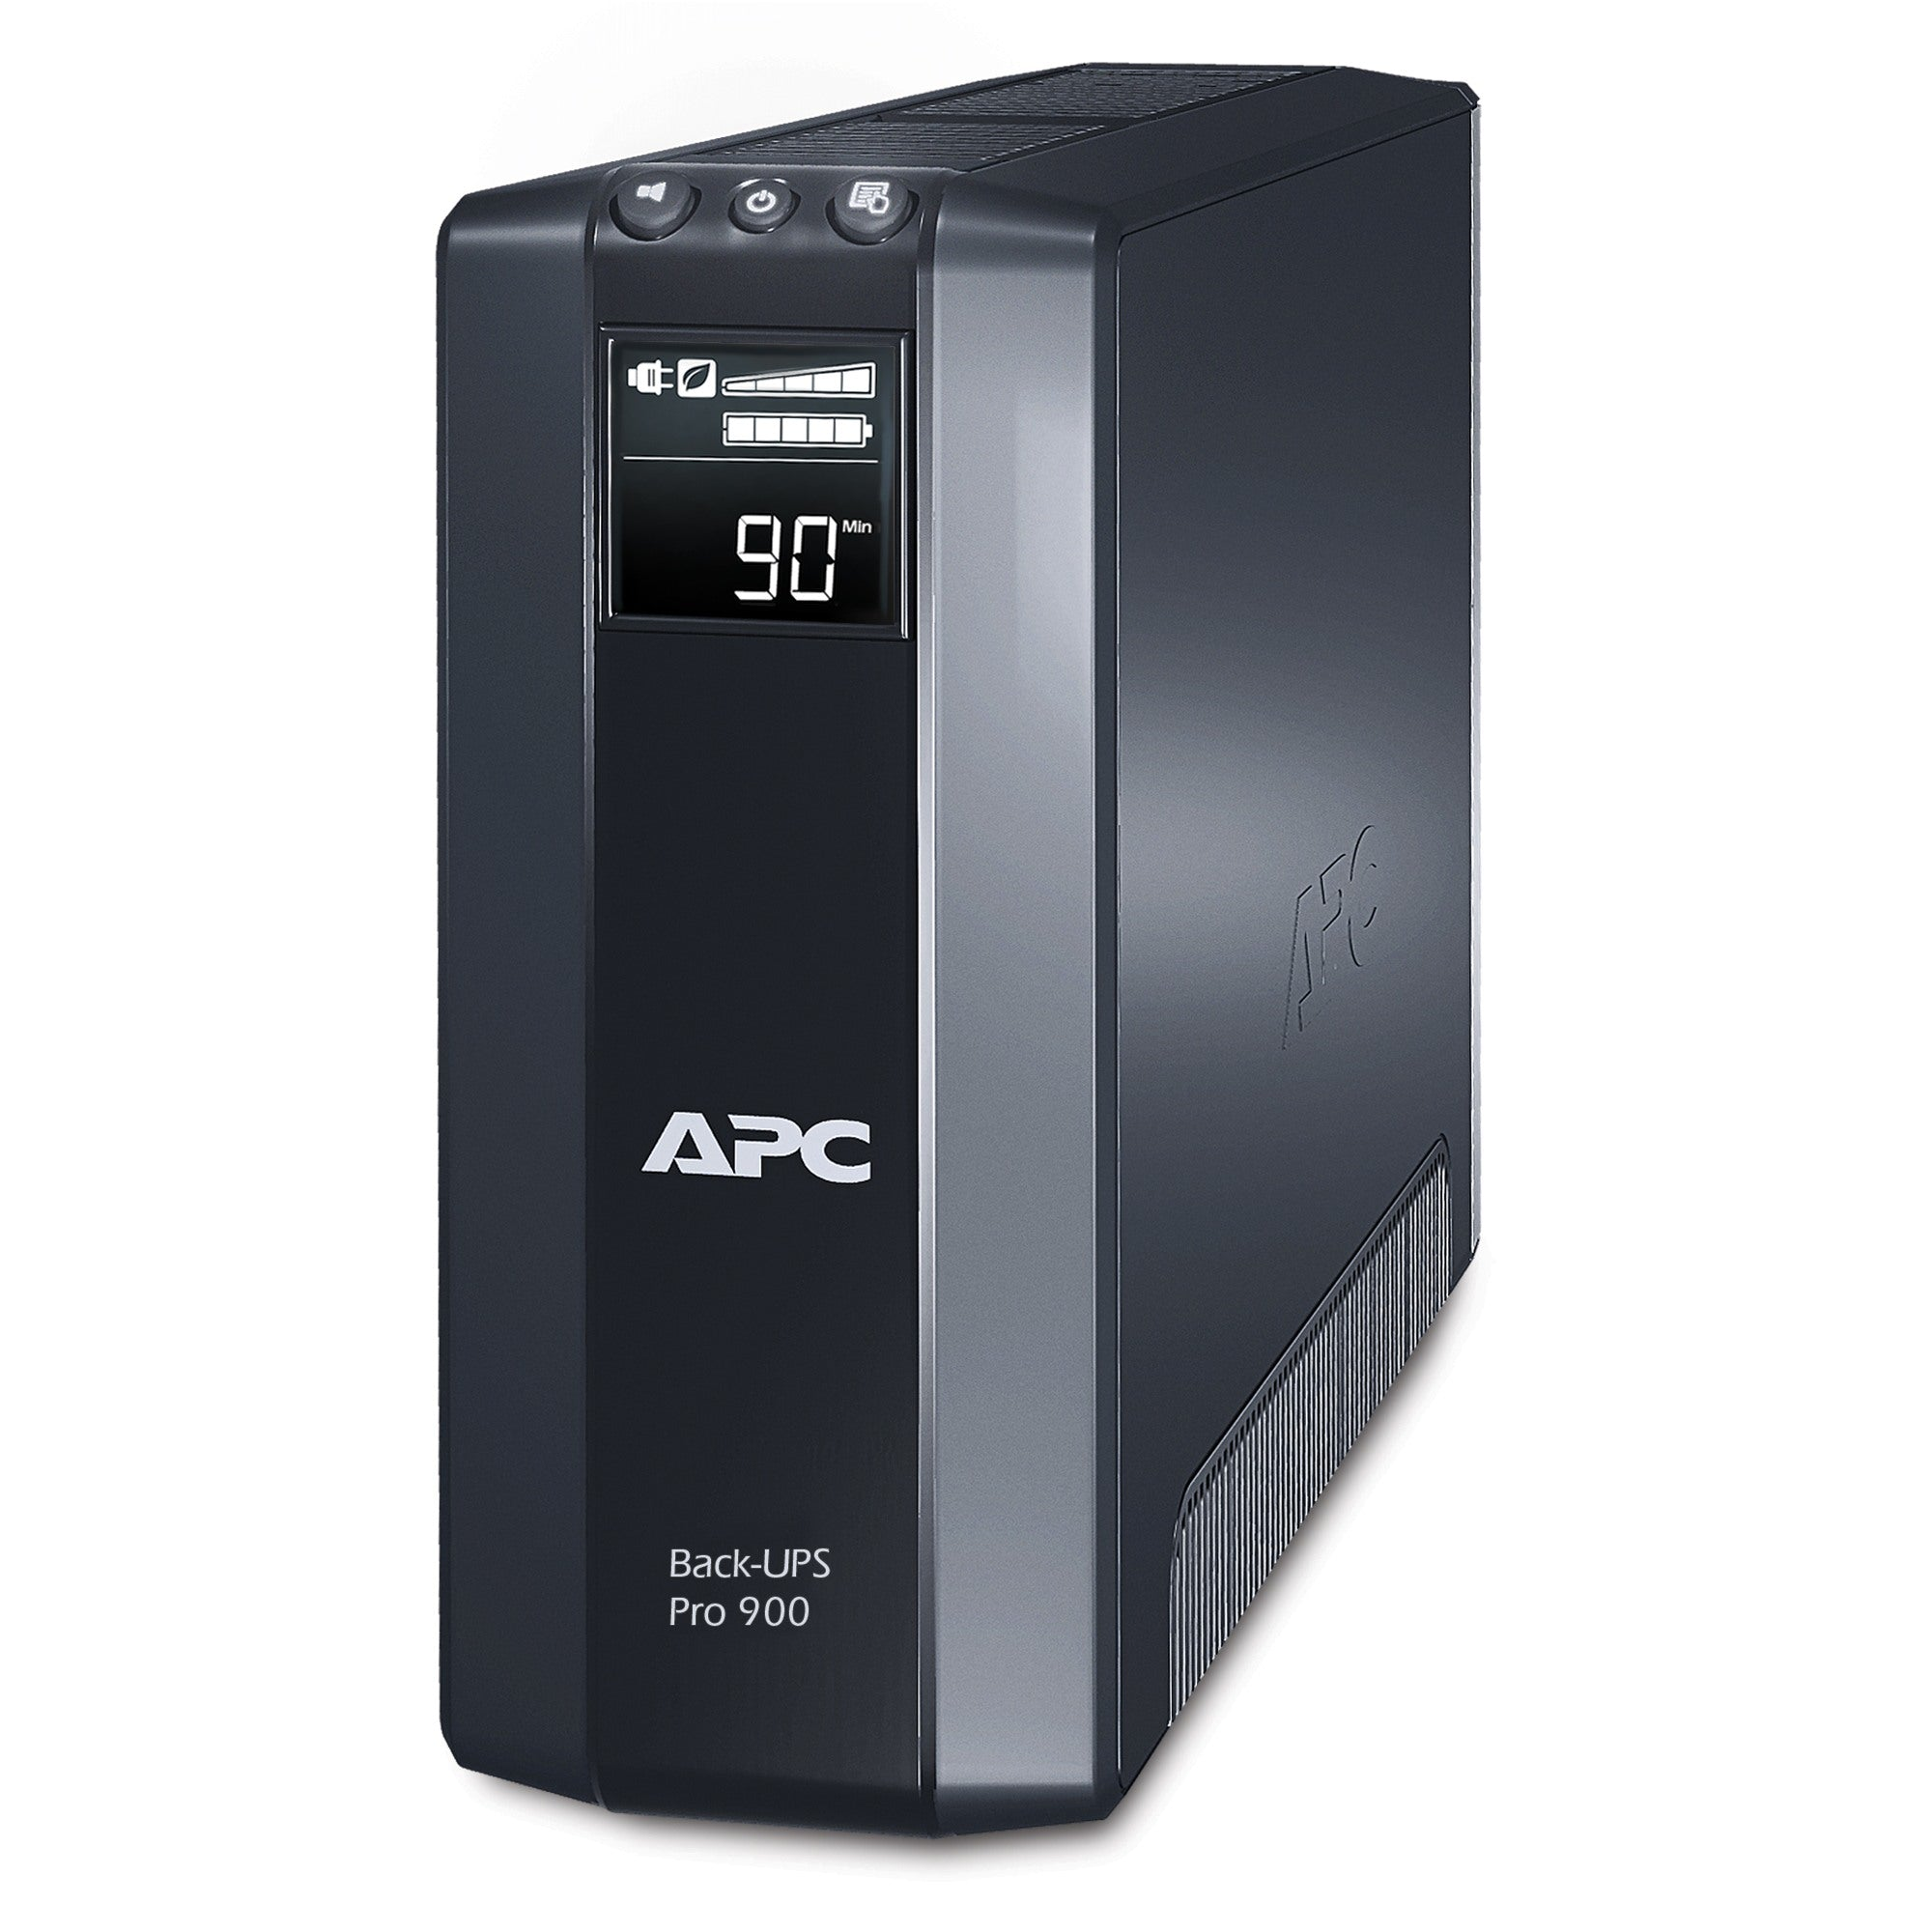 BR900GI APC Power-Saving Back-UPS Pro 900, 230V